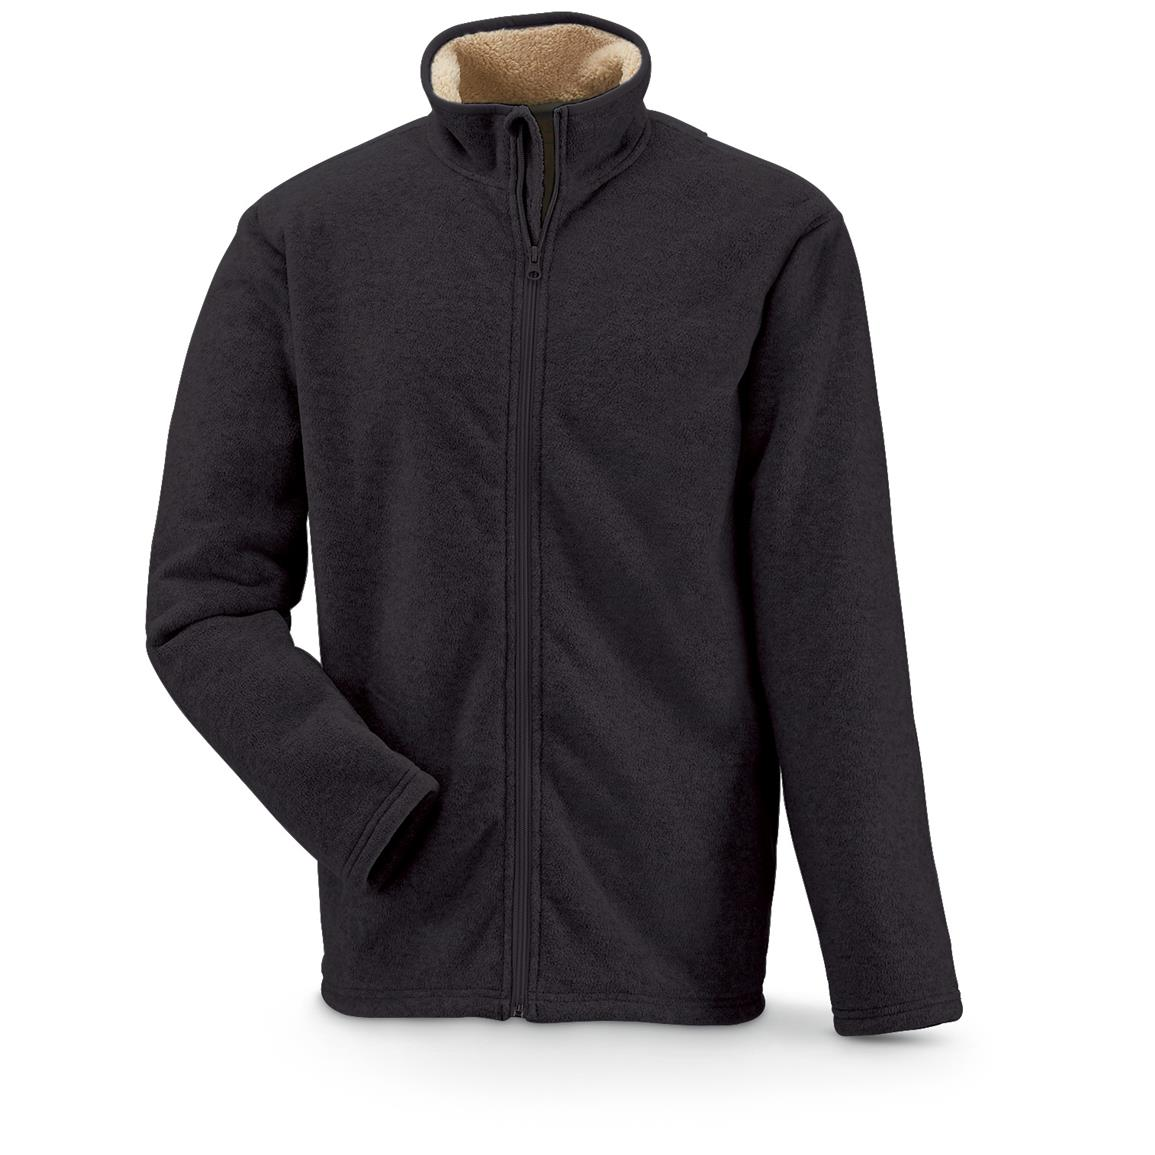 Marino Bay Men's Full Zip Fleece Jacket with Sherpa Lining, Black